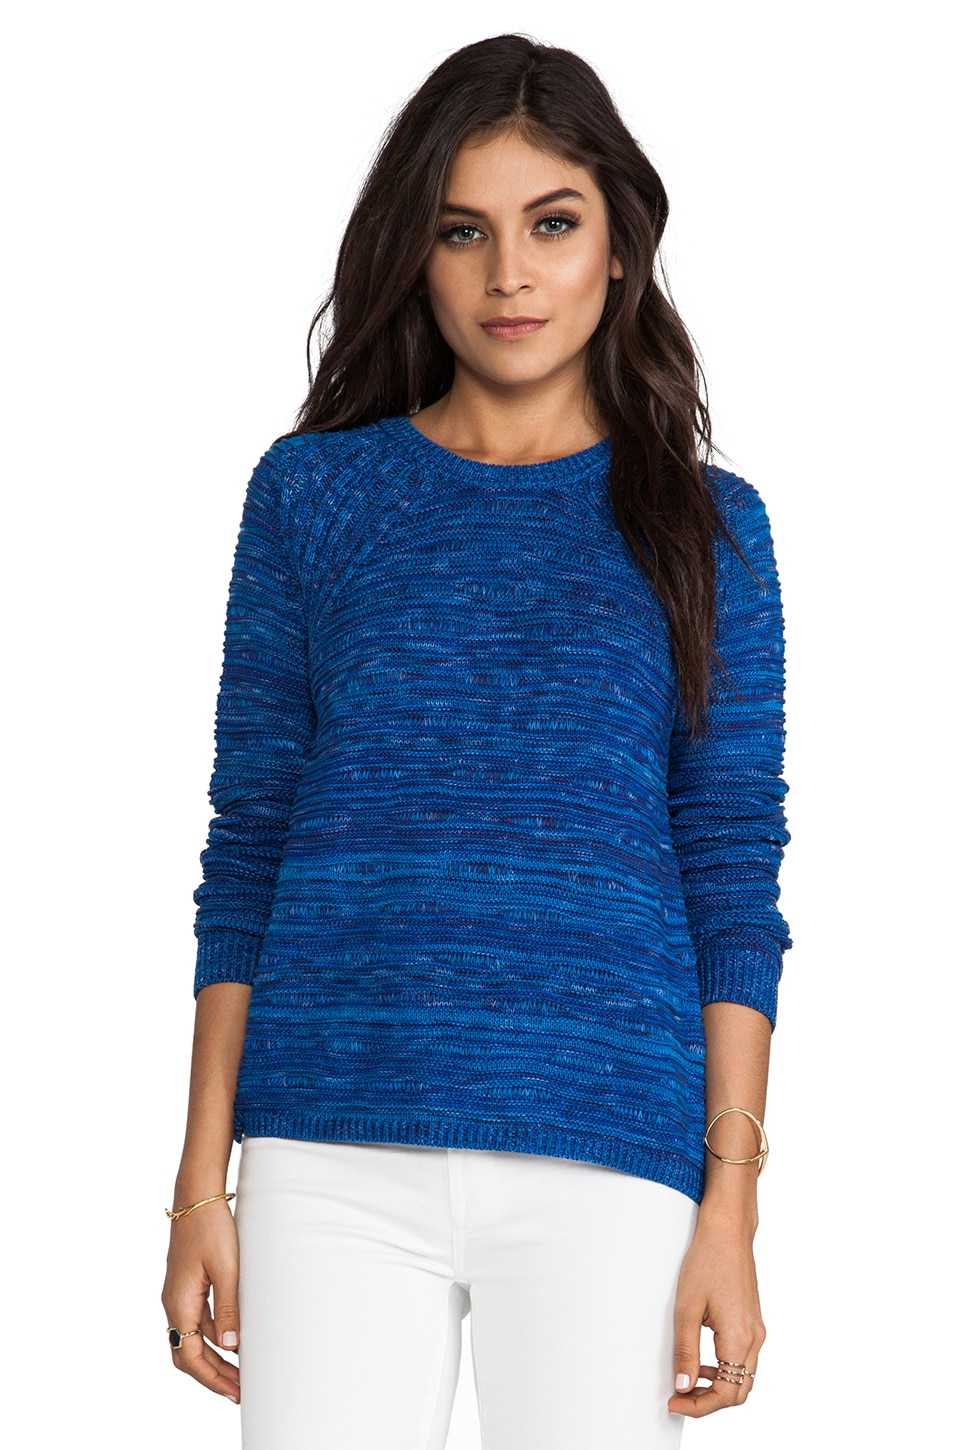 Autumn Cashmere Wavy Space Dye Crew Sweater in Blue Combo